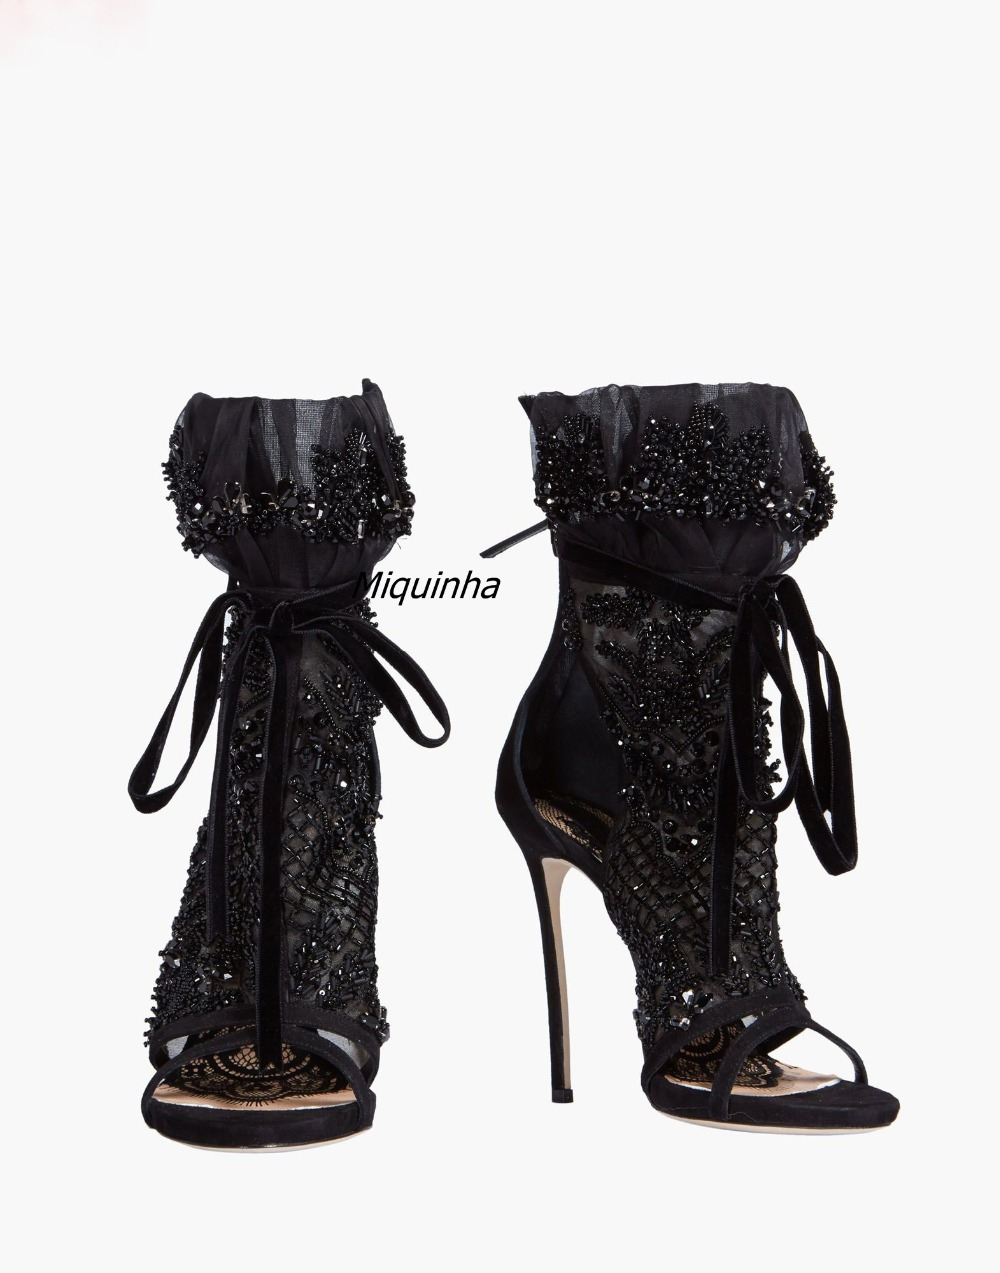 2017 Summer New Fashion Design Black Crystal Lace Up High Heels Sexy Black Mesh Open Toe Stiletto Heel Dress Sandals Women Shoes2017 Summer New Fashion Design Black Crystal Lace Up High Heels Sexy Black Mesh Open Toe Stiletto Heel Dress Sandals Women Shoes